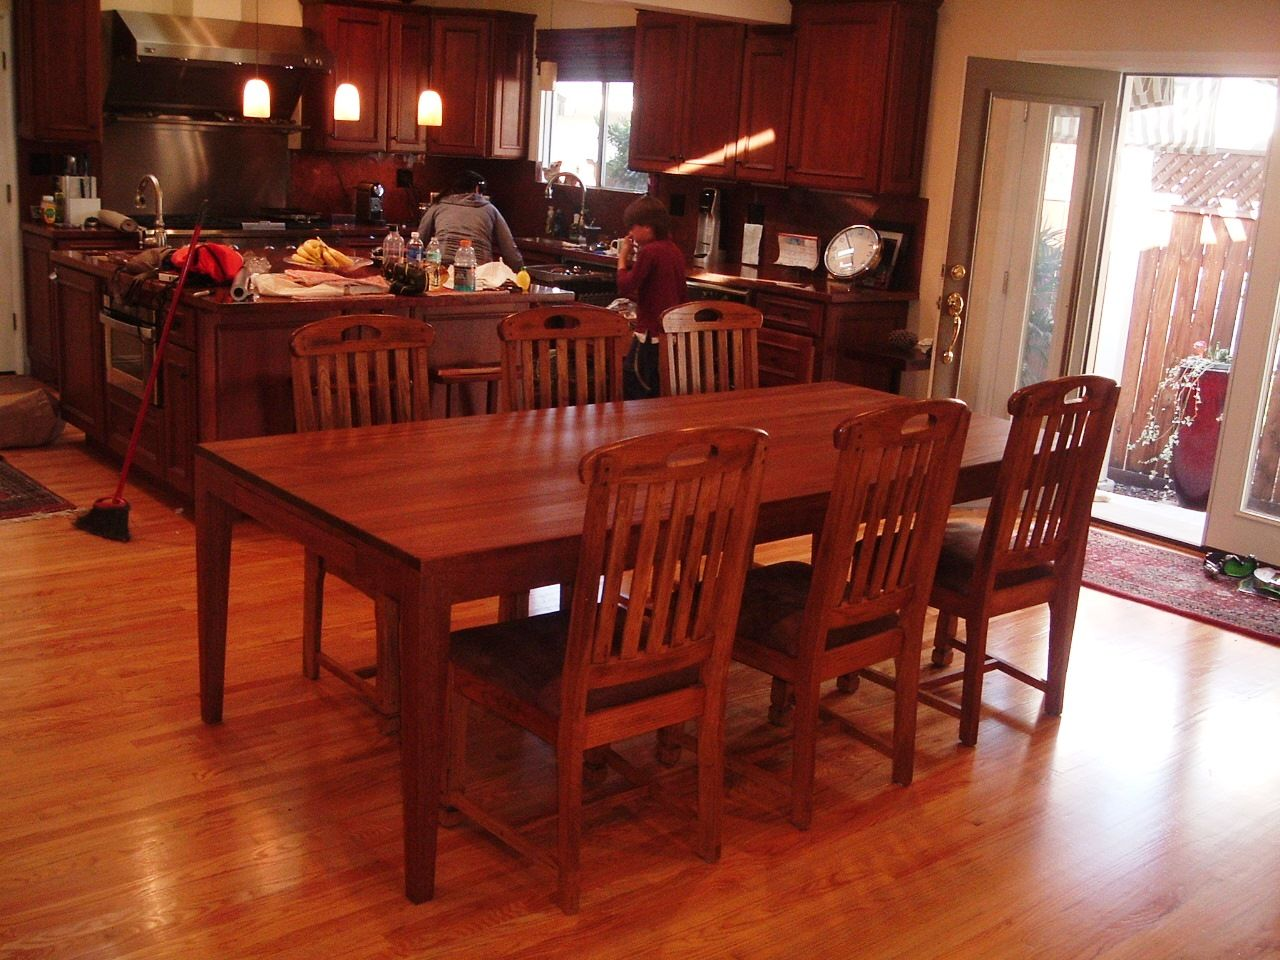 Hand Crafted Suzanne S 8 Foot Long African Mahogany Dining Table By Jonathan Walkey Furniture Maker Custommade Com